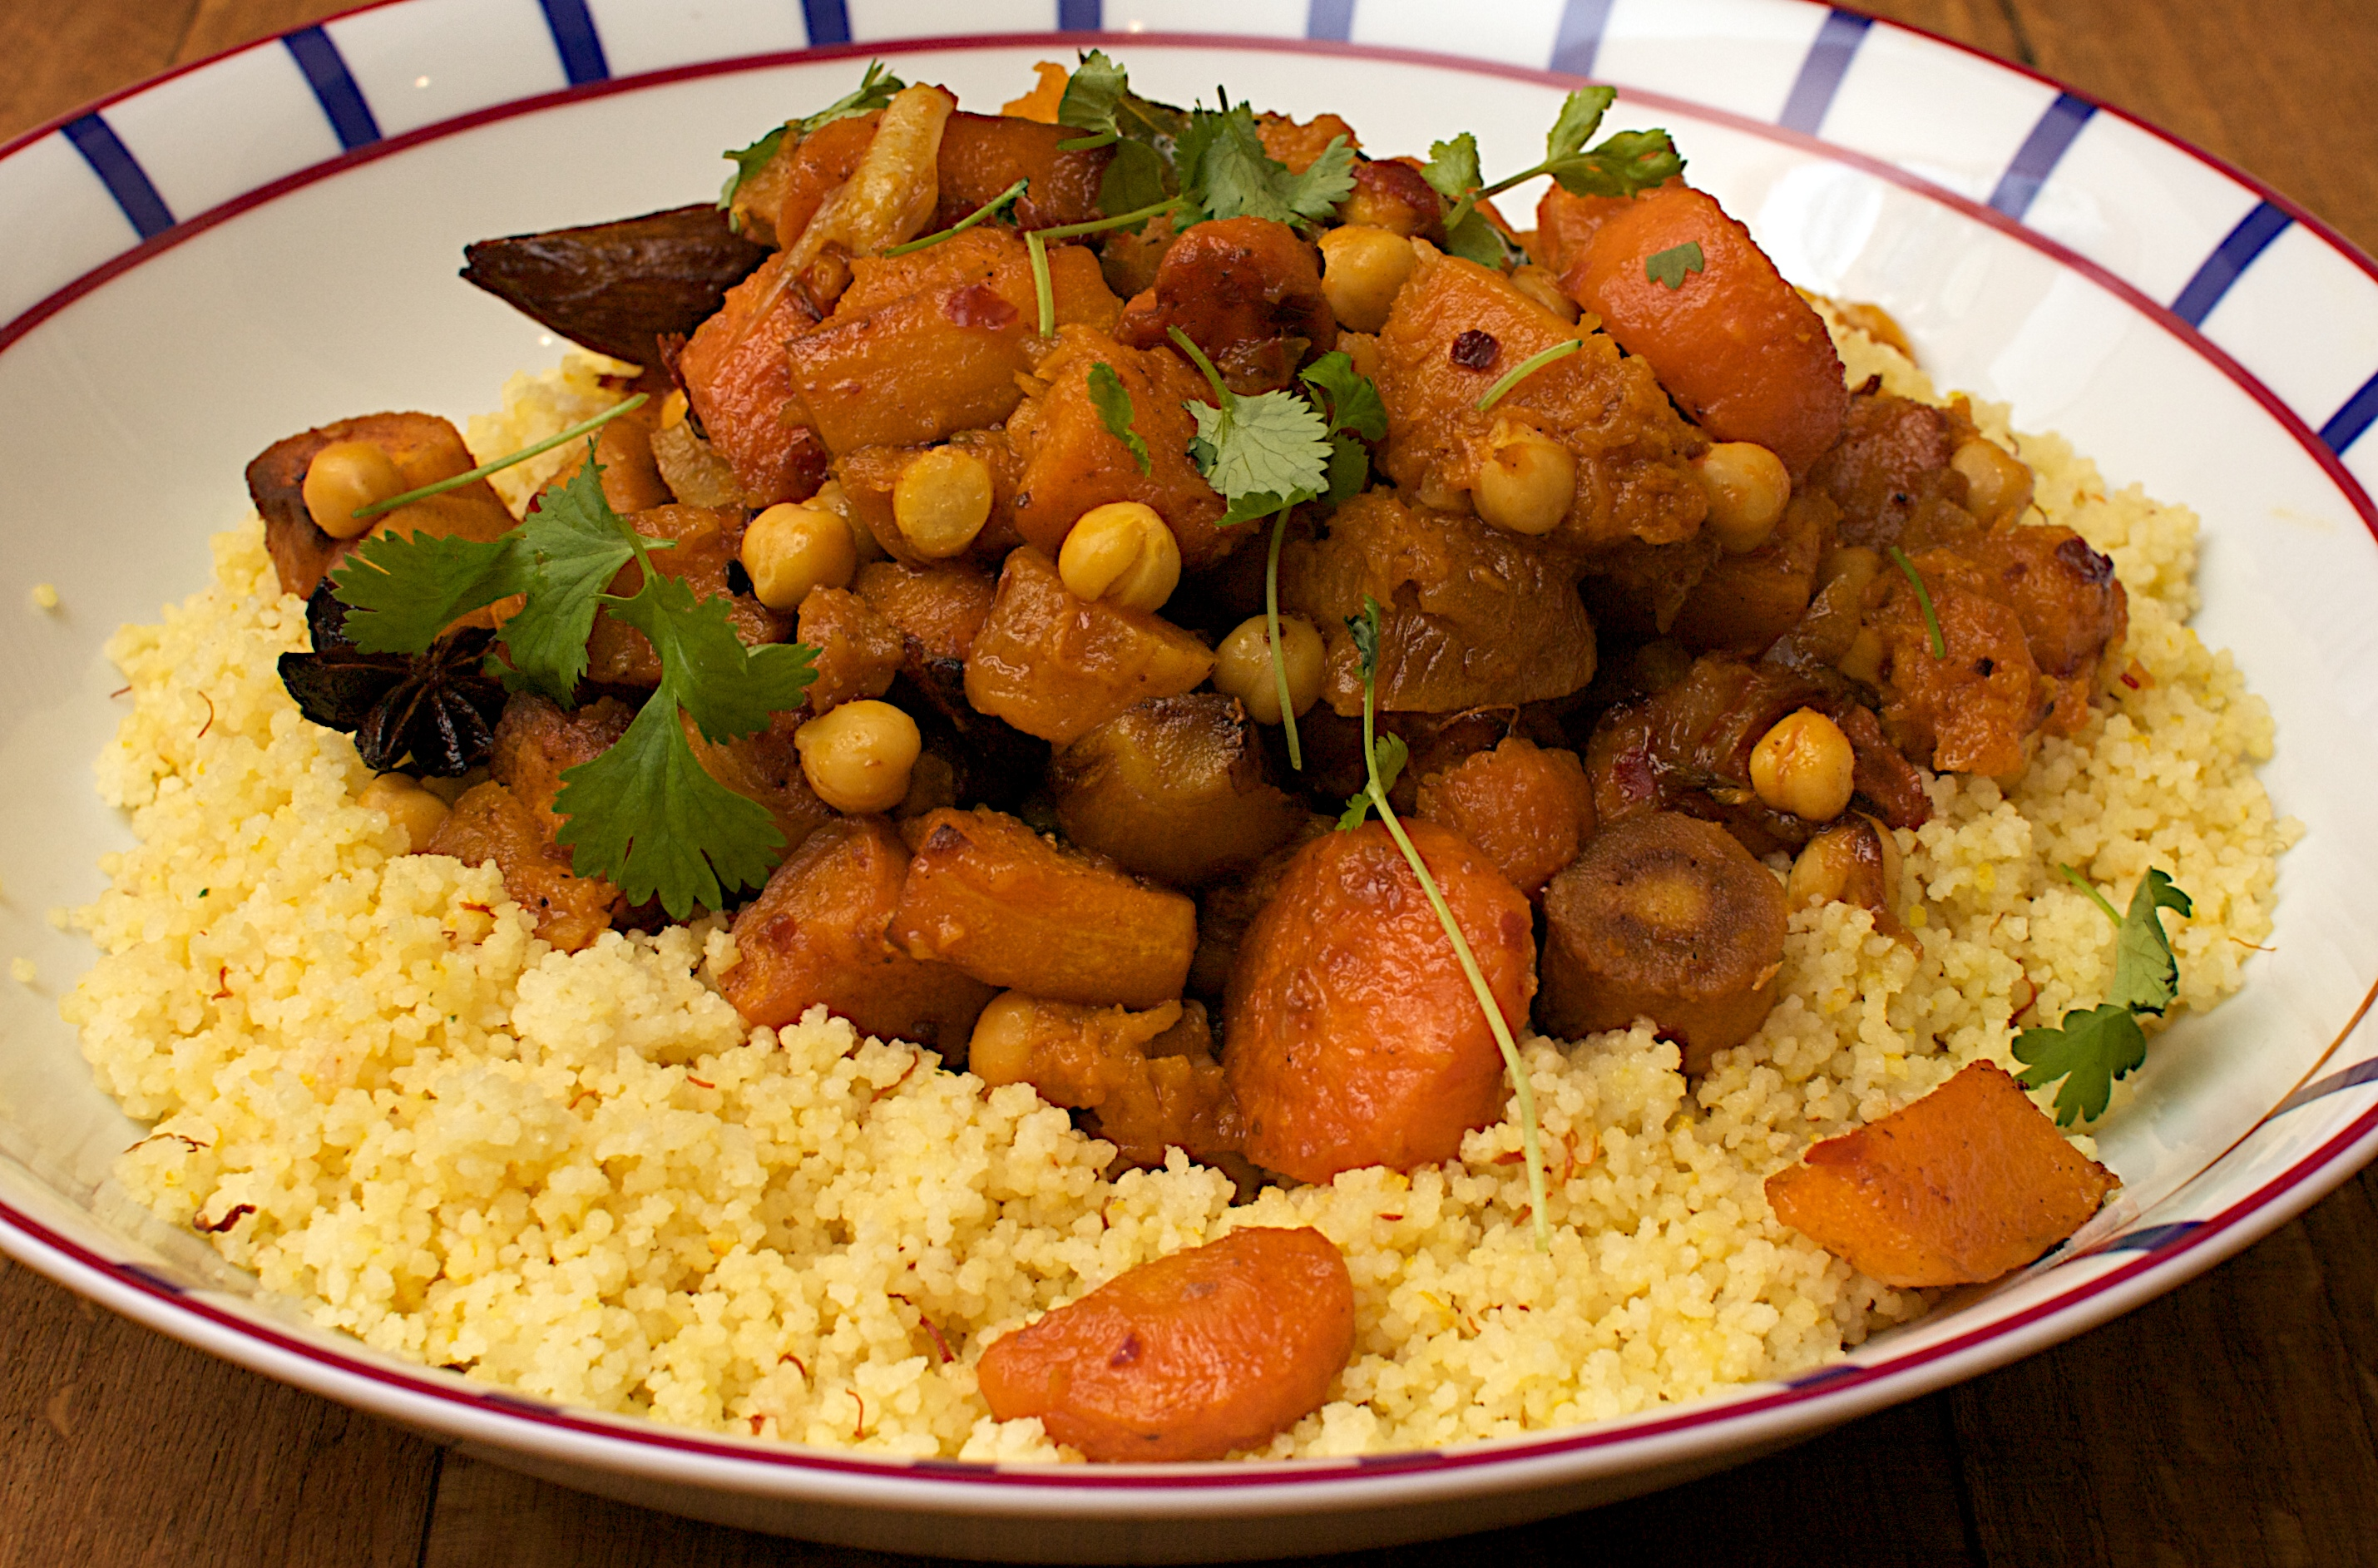 Couscous jono jules do food wine for Couscous food recipe